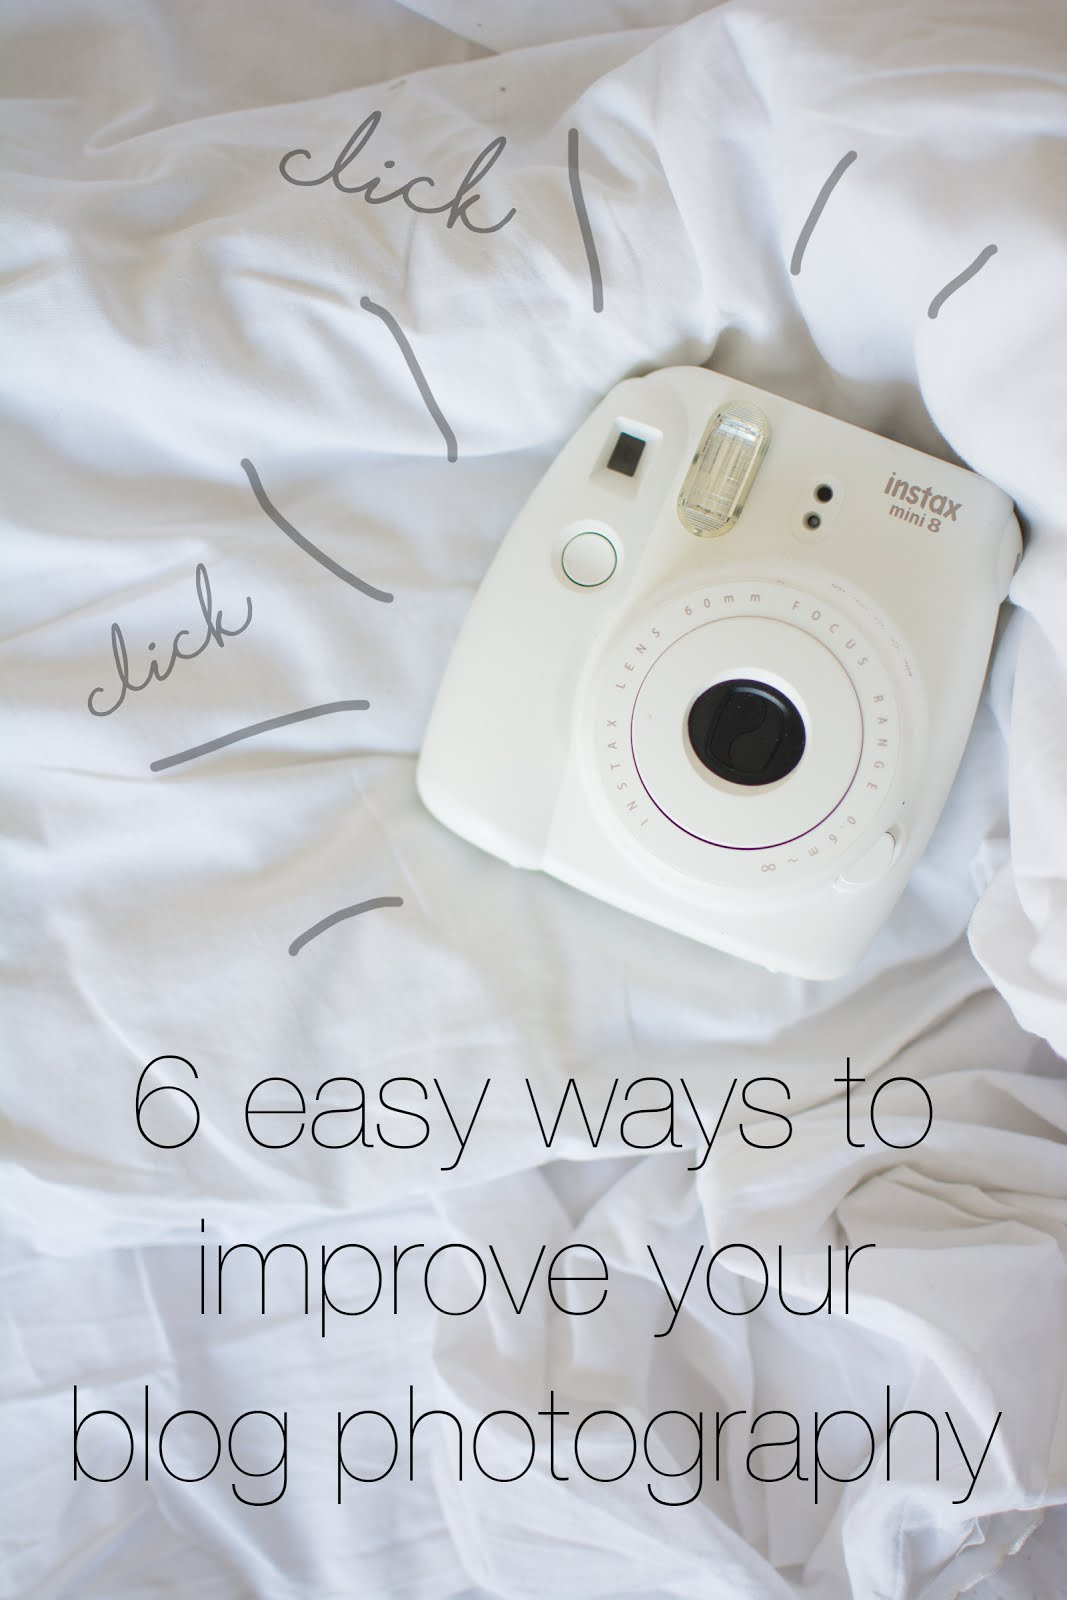 6 Easy Ways To Improve Your Blog Photography